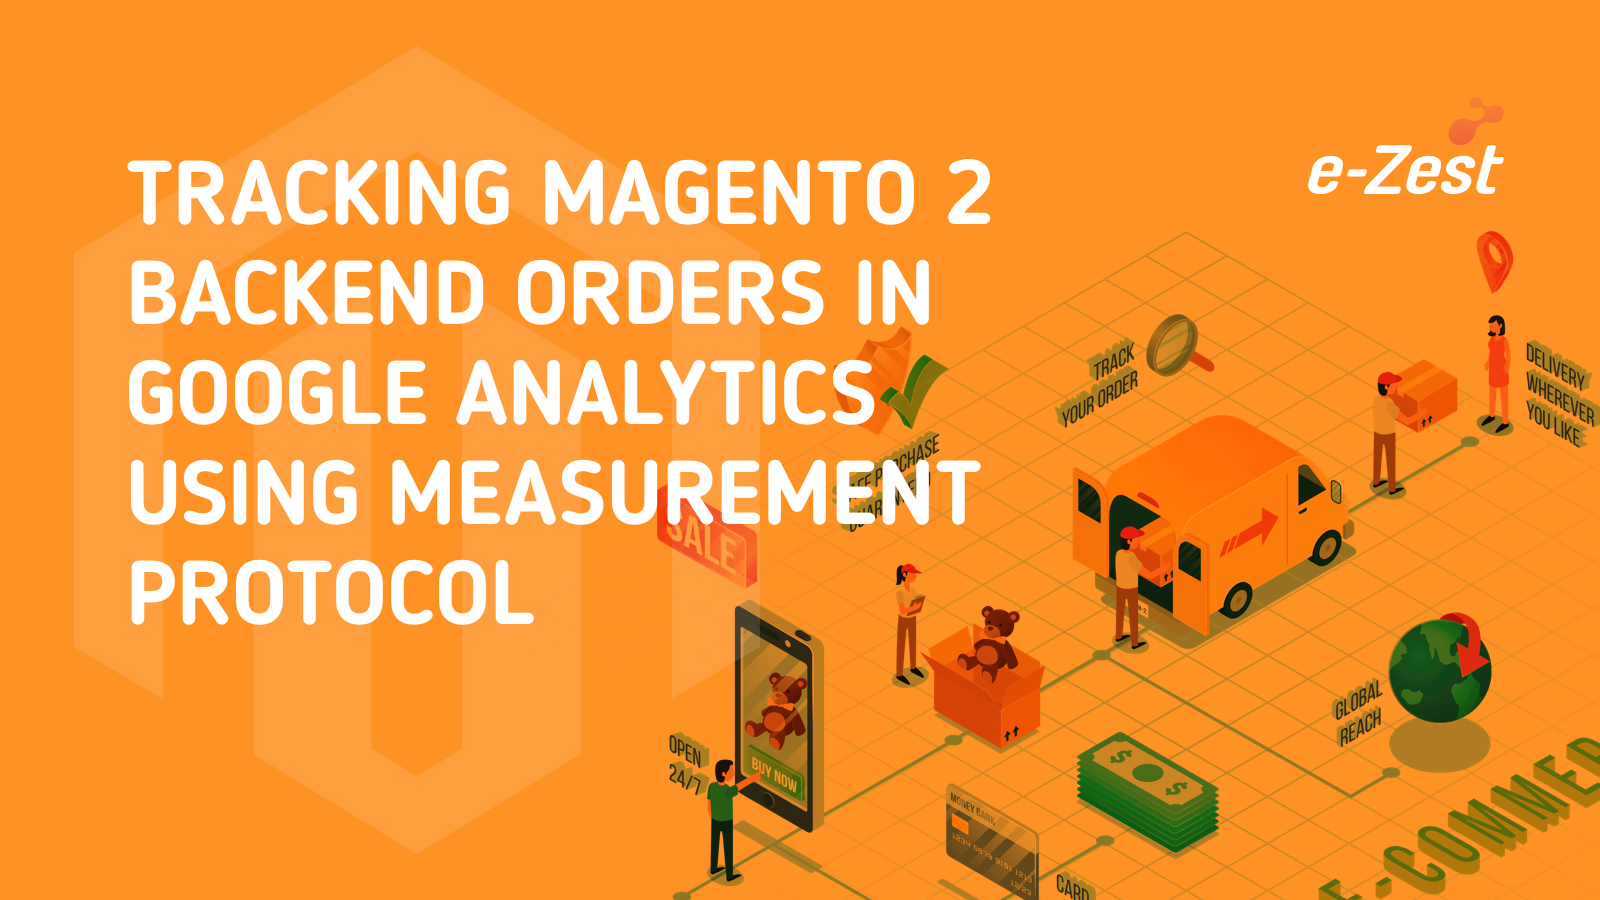 Tracking Magento 2 backend orders in Google Analytics using Measurement Protocol